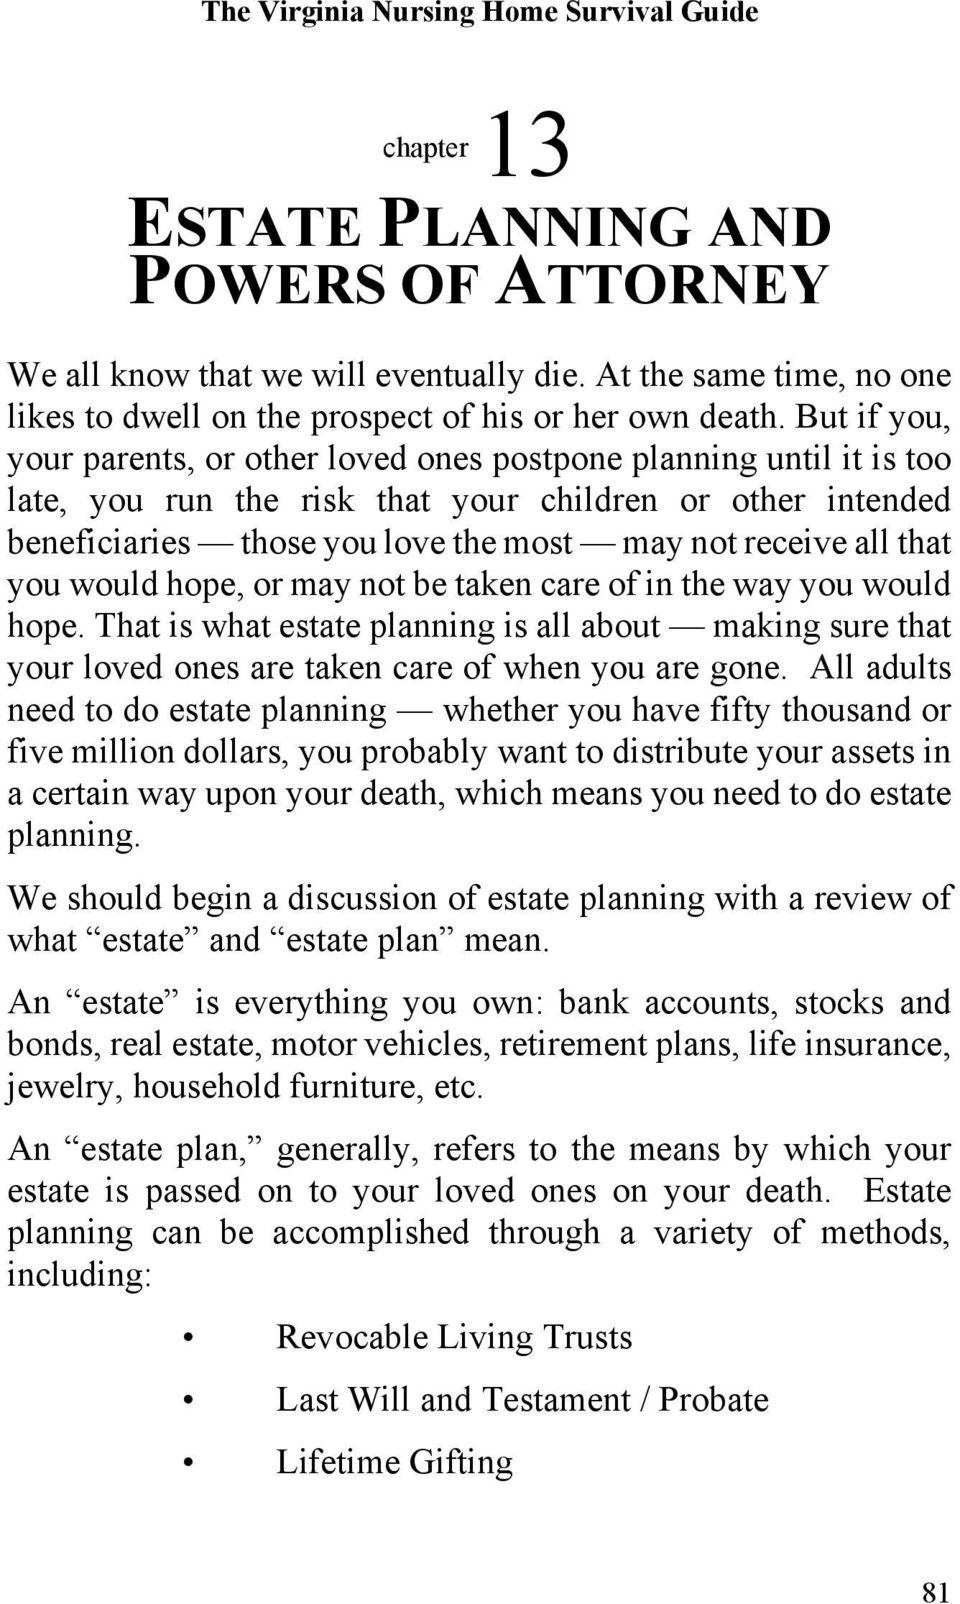 that you would hope, or may not be taken care of in the way you would hope. That is what estate planning is all about making sure that your loved ones are taken care of when you are gone.